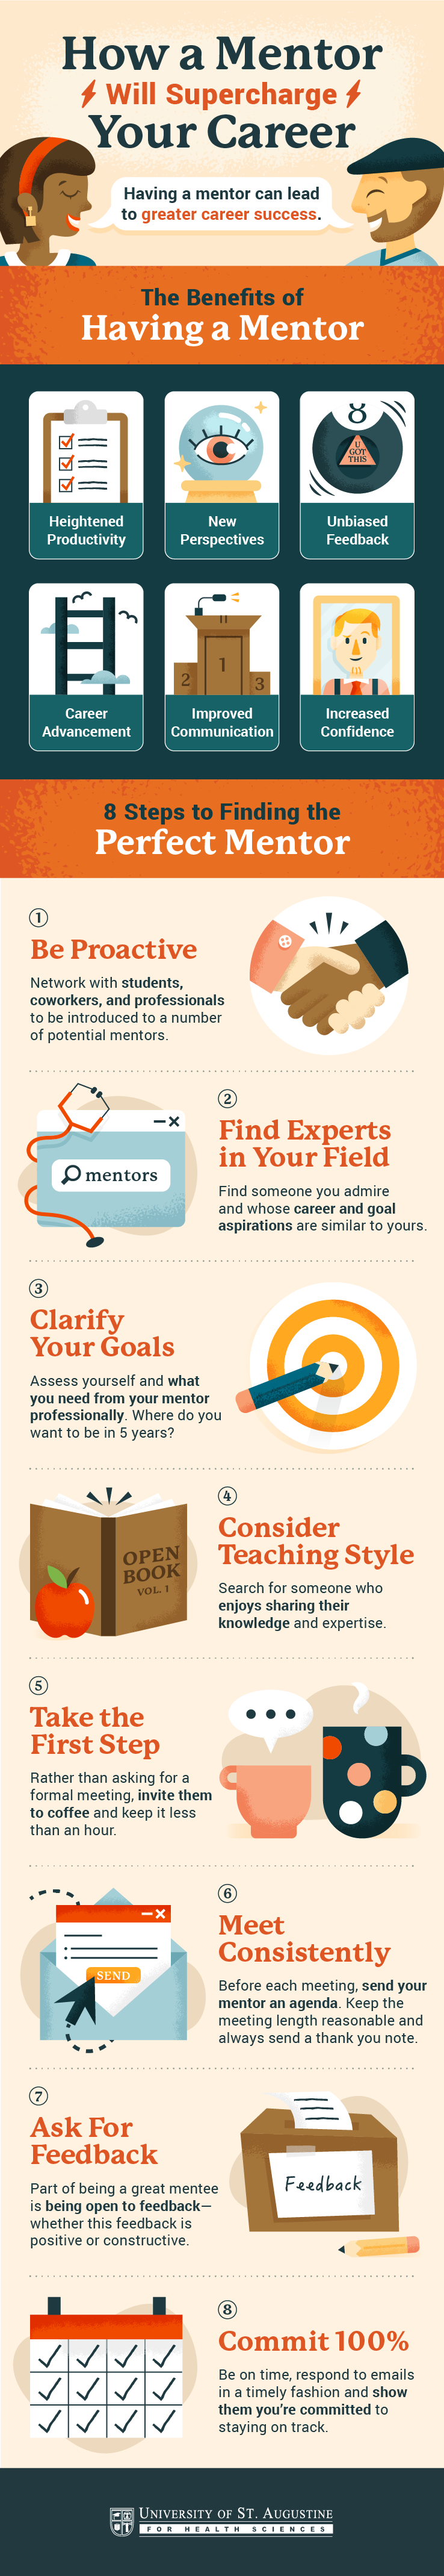 how a mentor will supercharge your career infographic